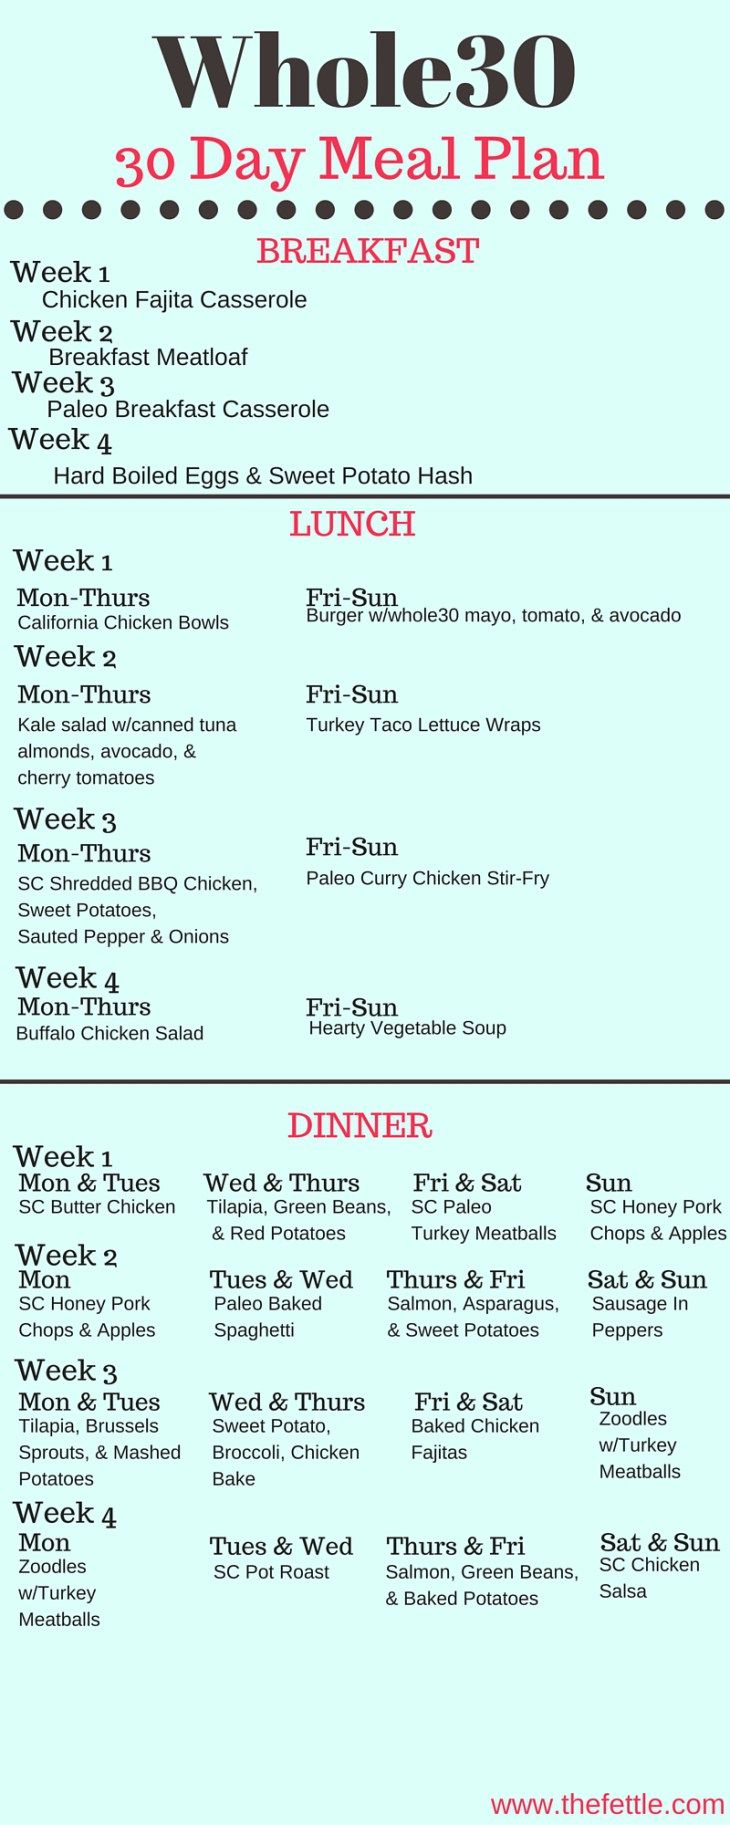 Diet Plan To Lose Weight : The Whole30 Meal Plan 30 Days ...